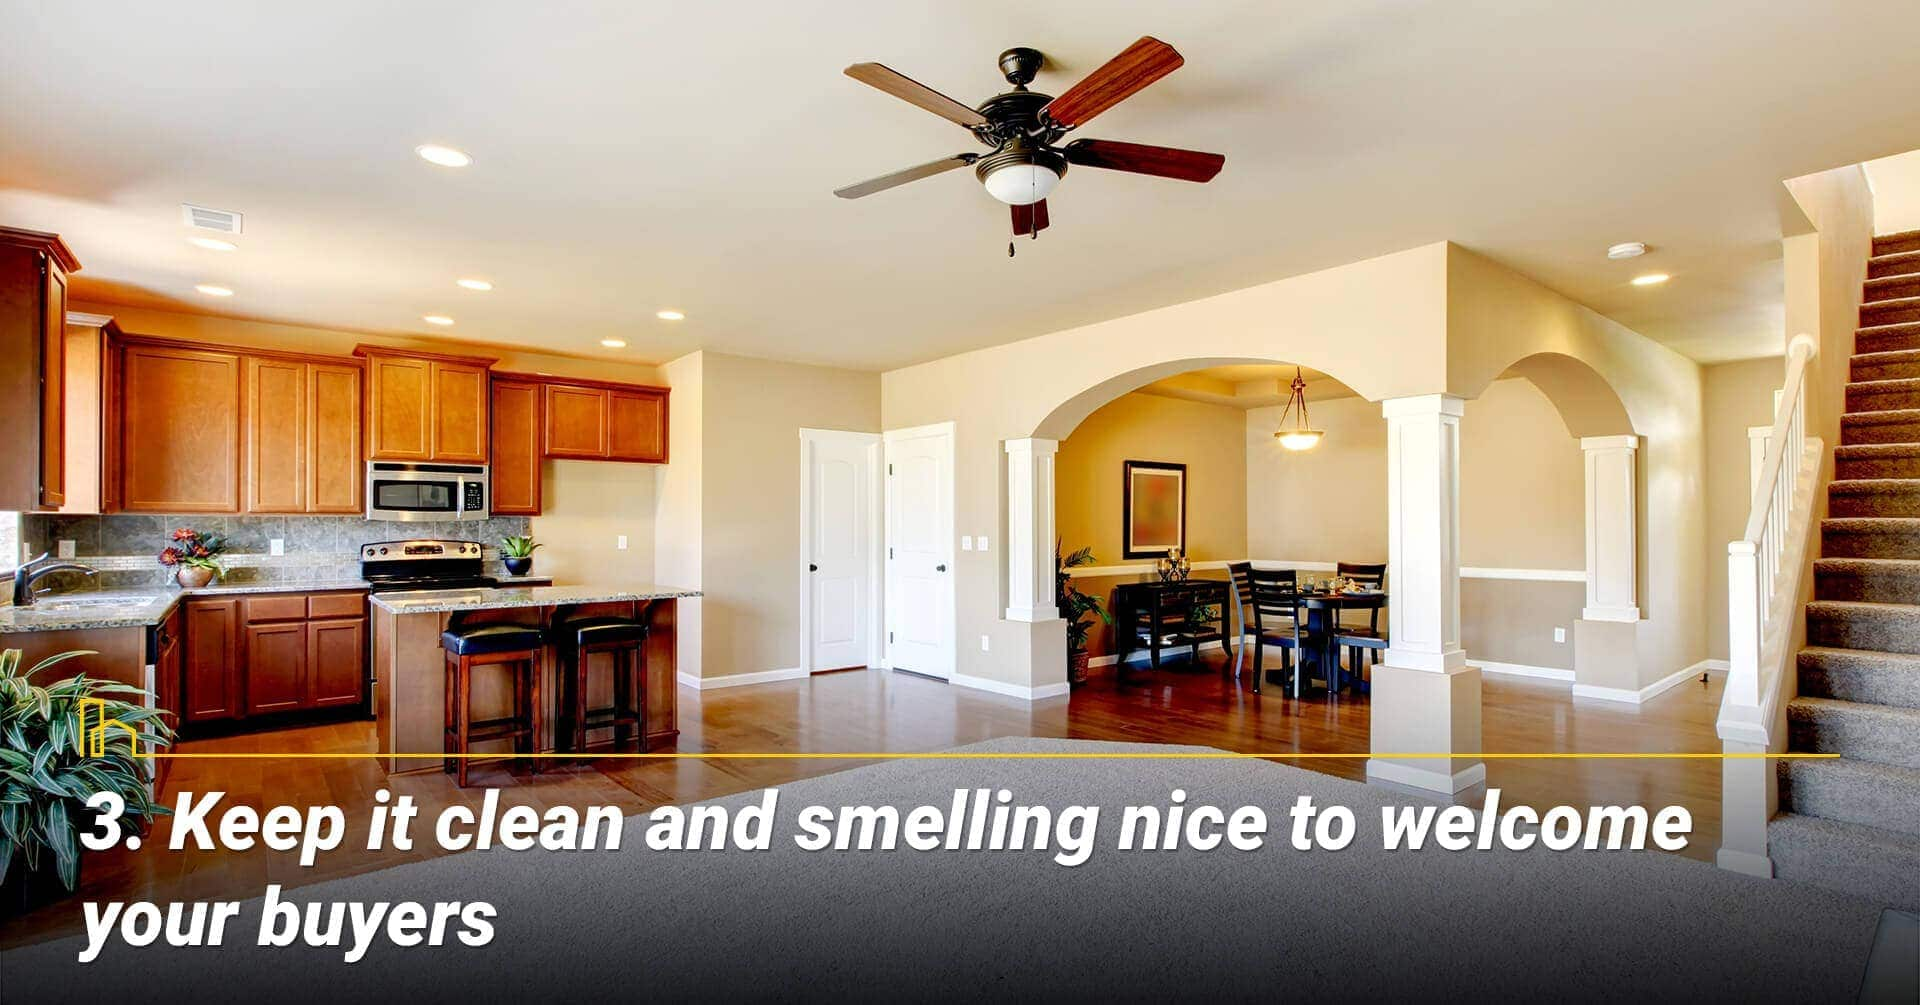 Keep it clean and smelling nice to welcome your buyers, freshen it up for potential buyers